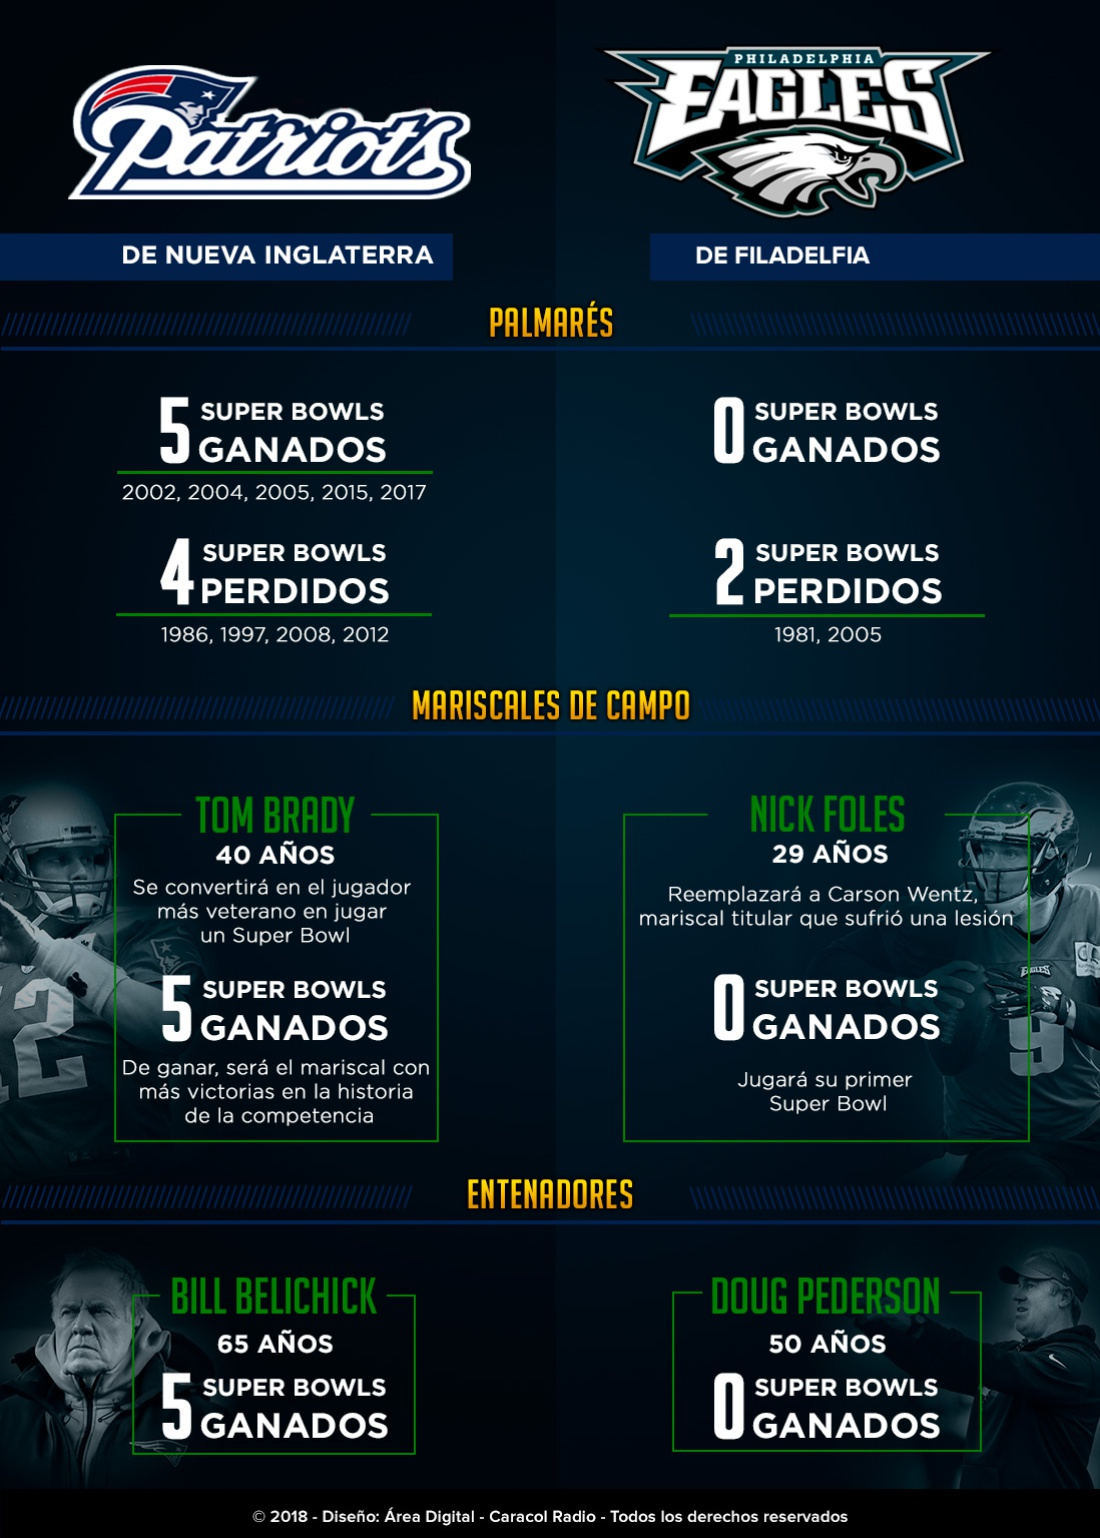 Patriots Eagles Cara a cara: Patriots Vs. Eagles: cara a cara por el Super Bowl LII